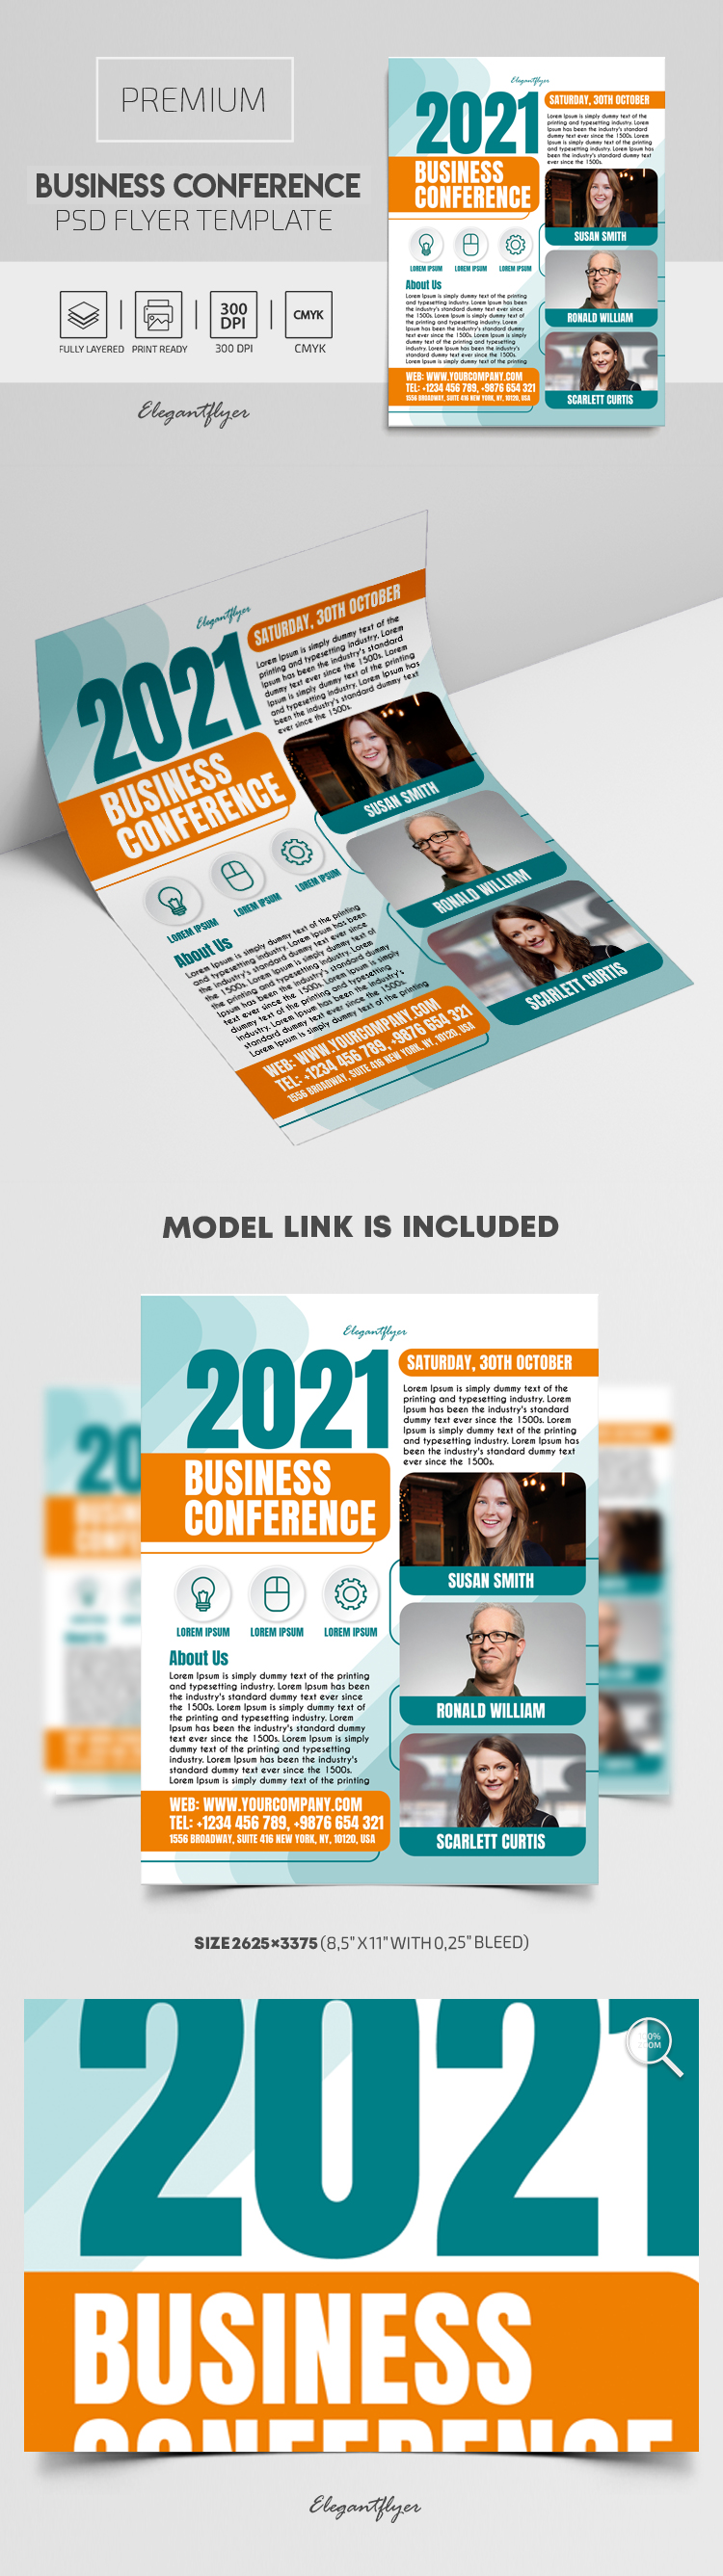 Business Conference – Premium PSD Flyer Template